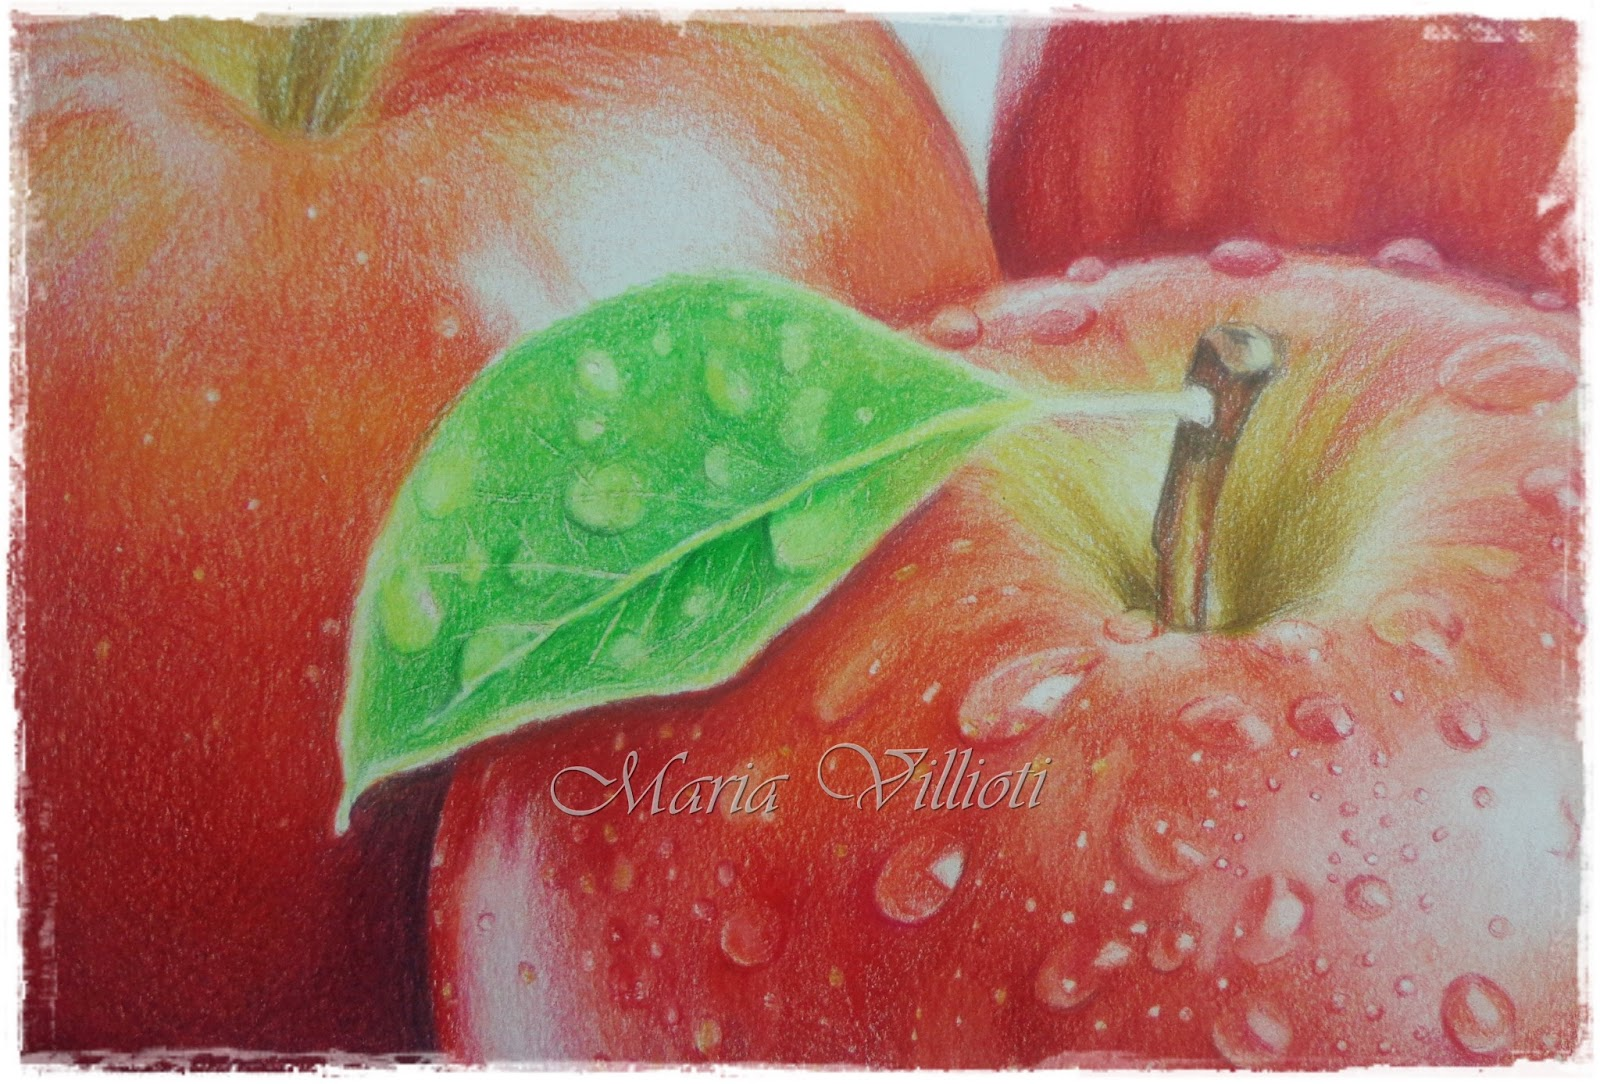 Maria Villioti - breaths of art: Drops on apples with colored pencils